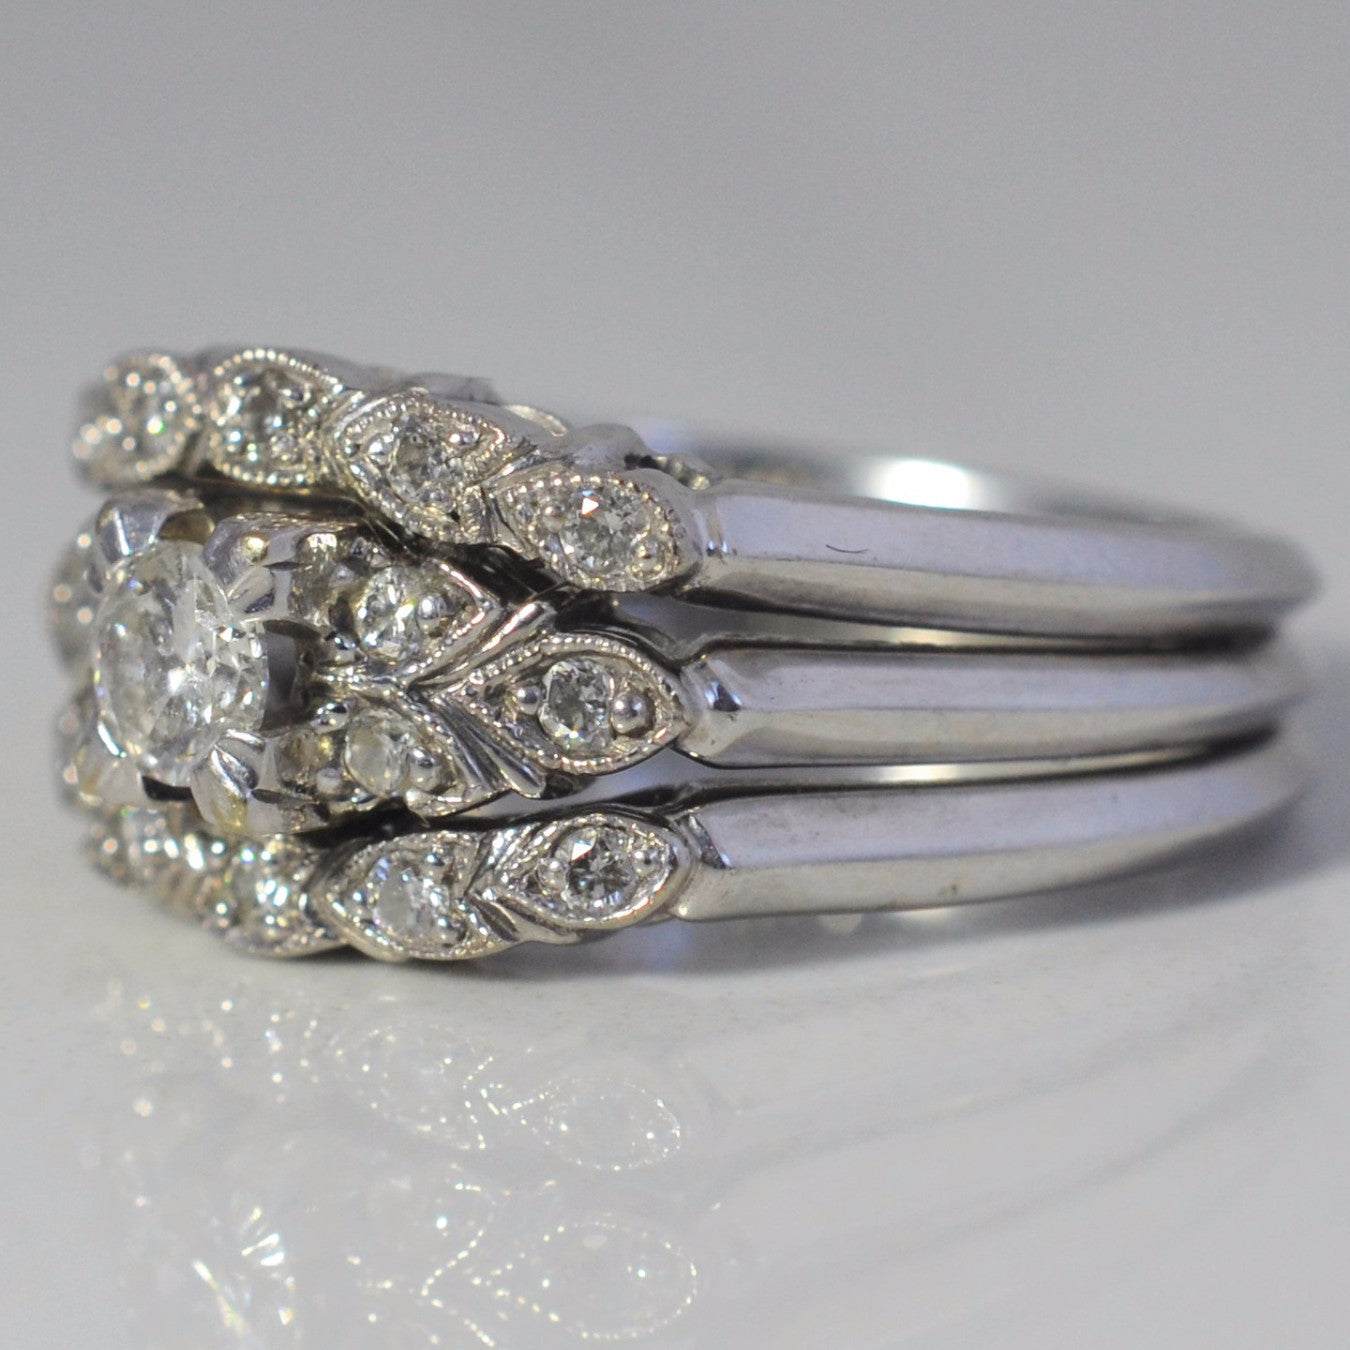 Soldered Milgrain Detail Diamond Wedding Set | 0.36 ctw, SZ 6.5 |